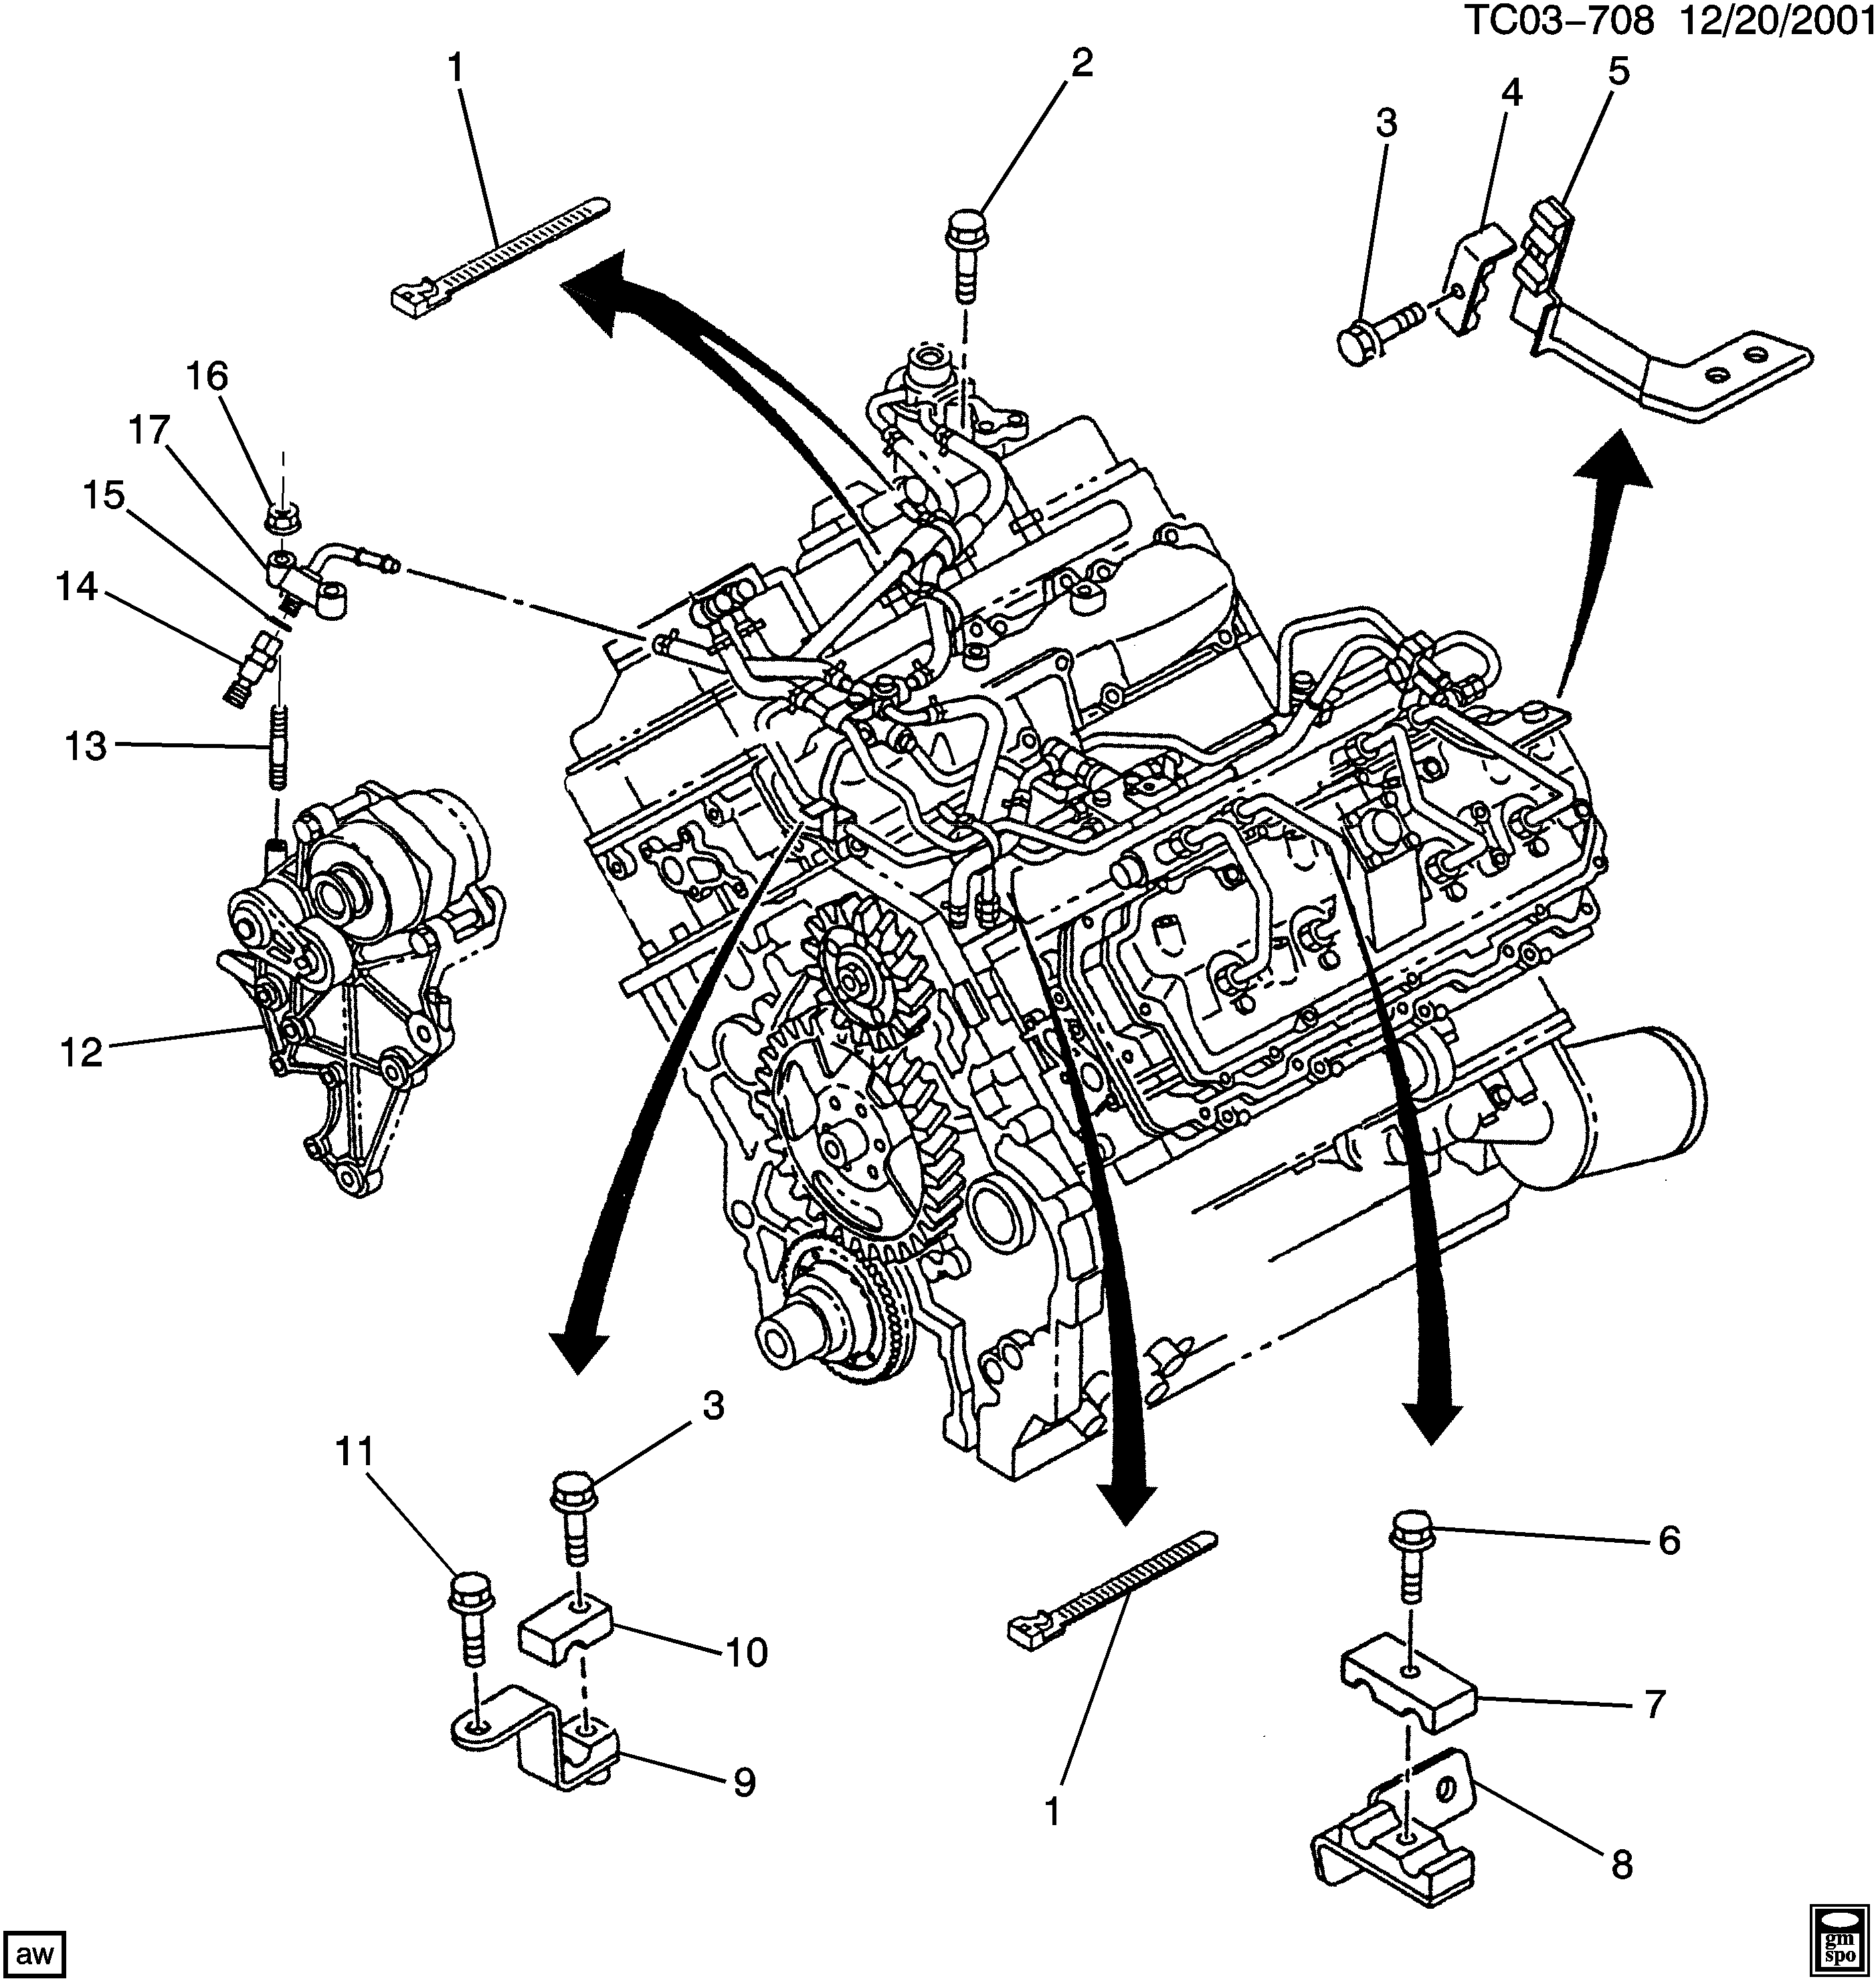 Duramax Lb7 Fuel Line Diagram